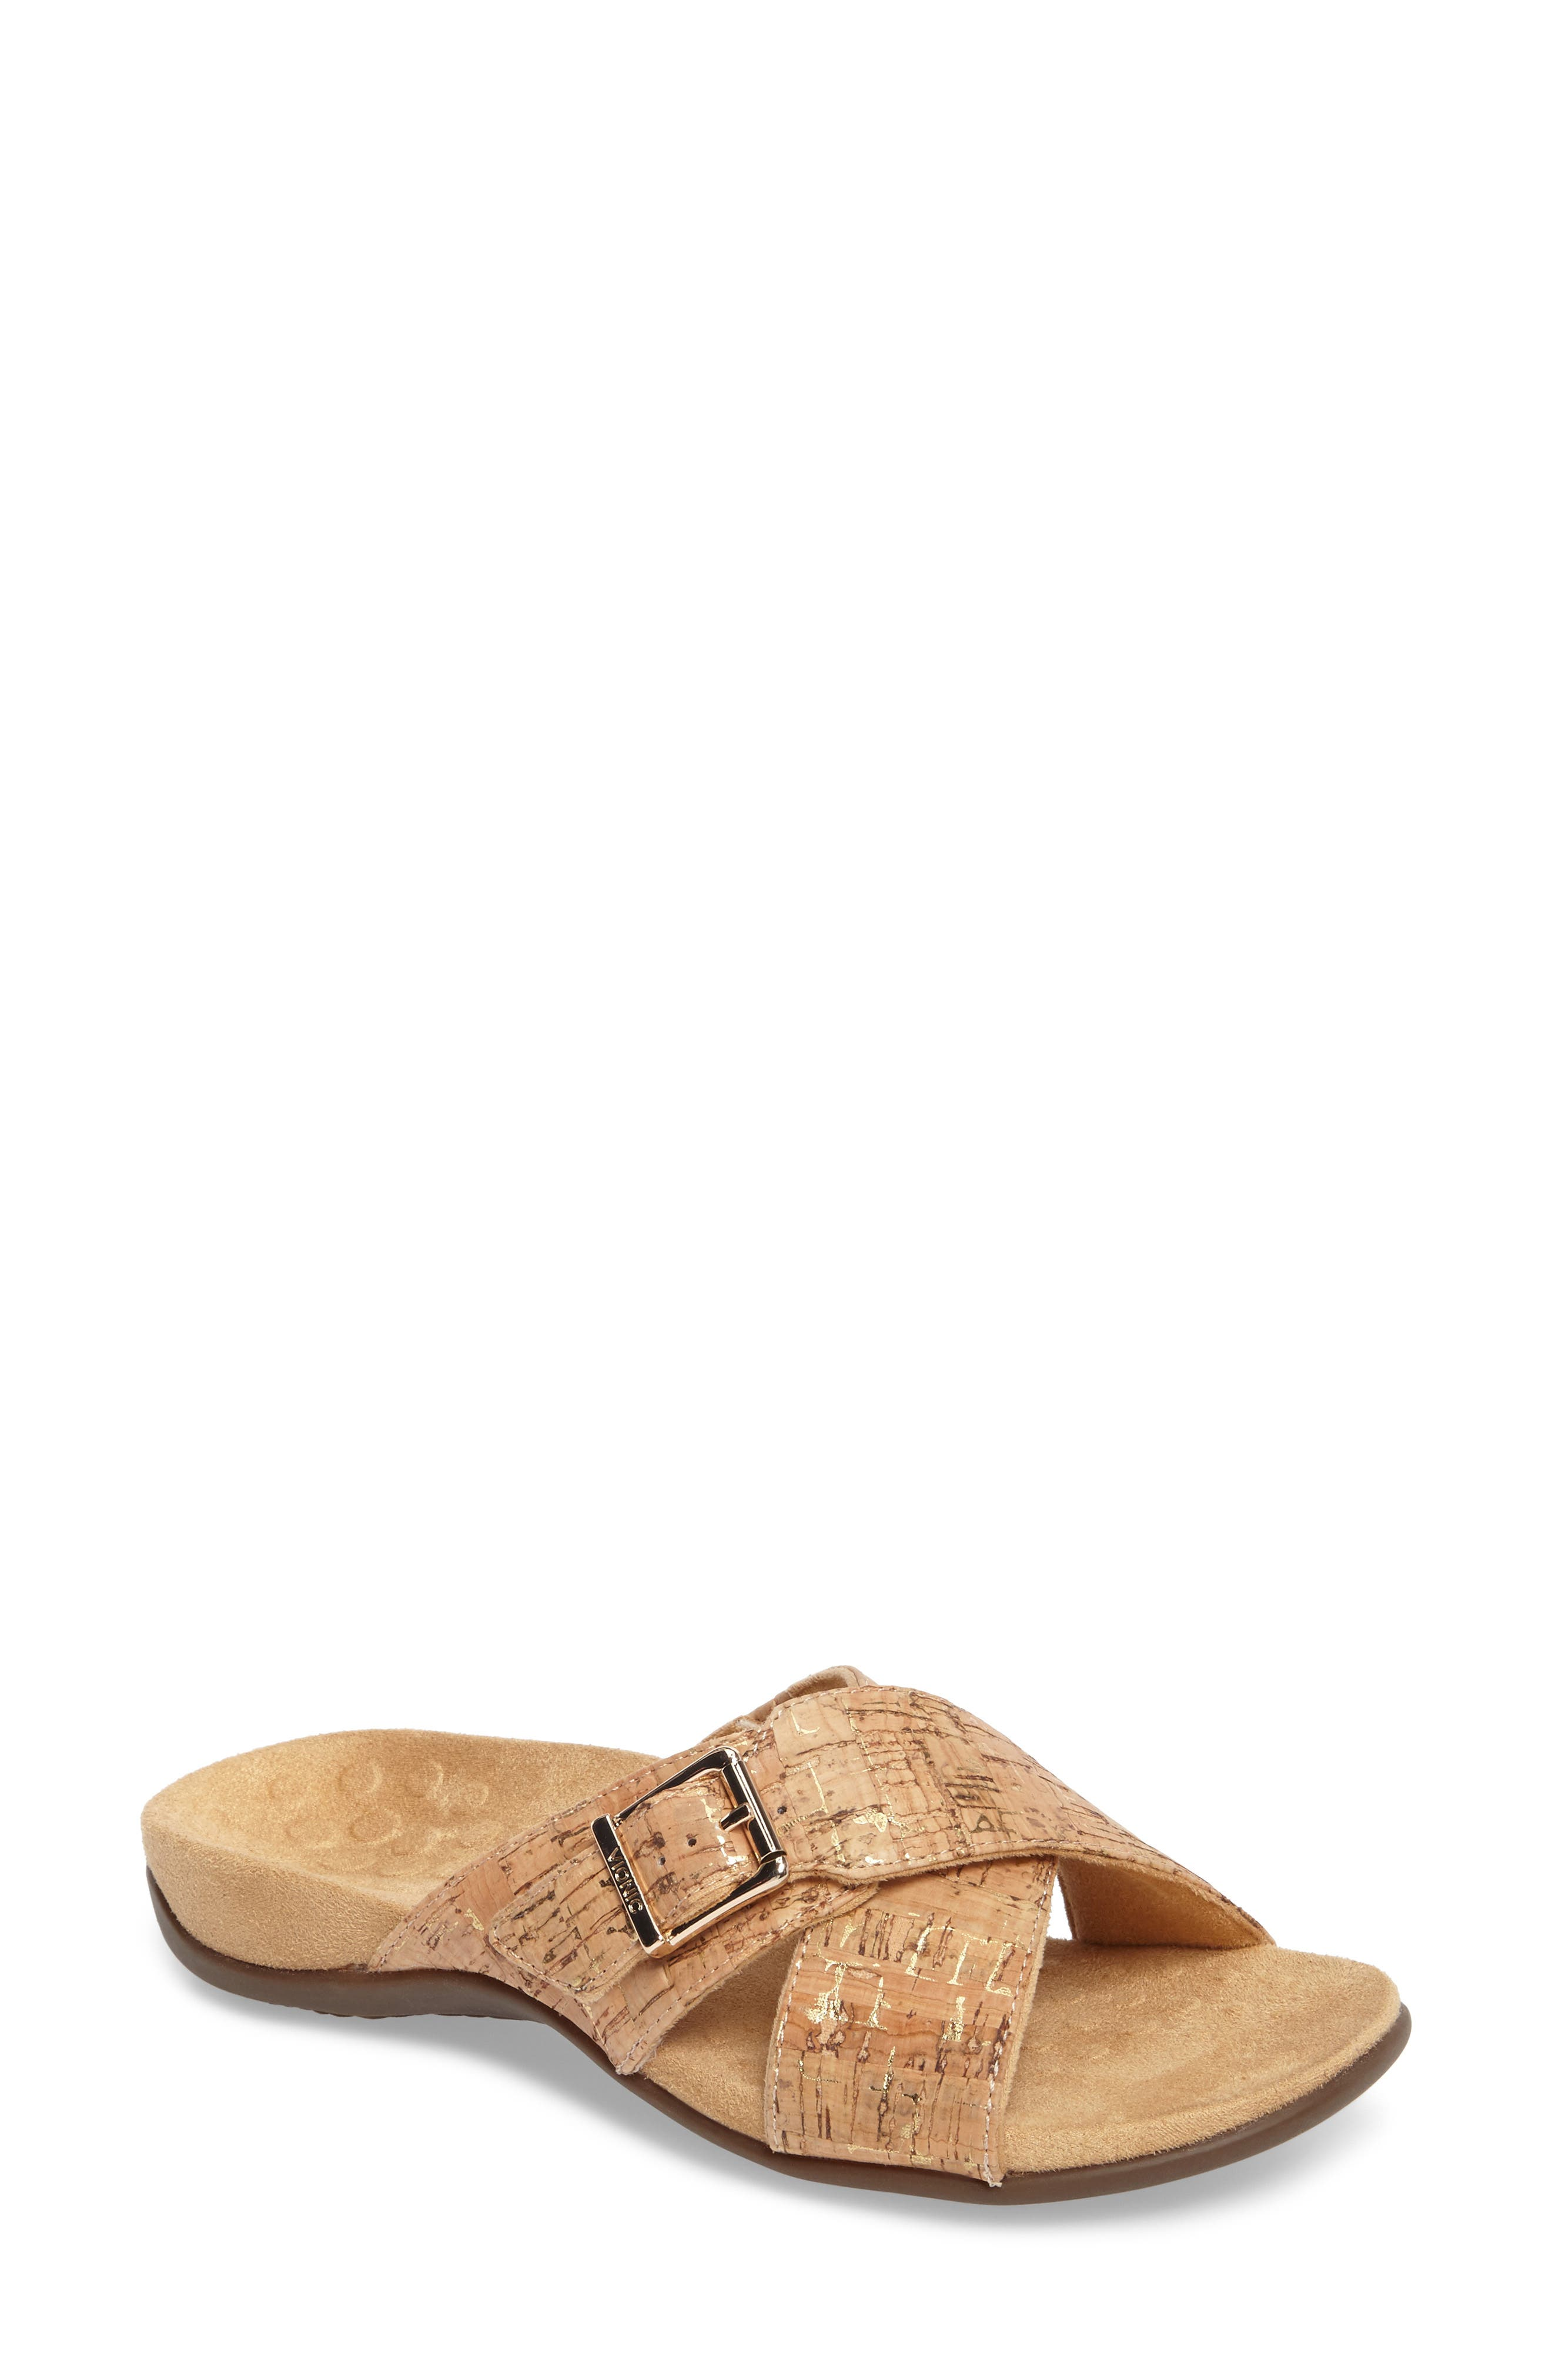 Vionic Dorie Cross Strap Slide Sandal (Women)